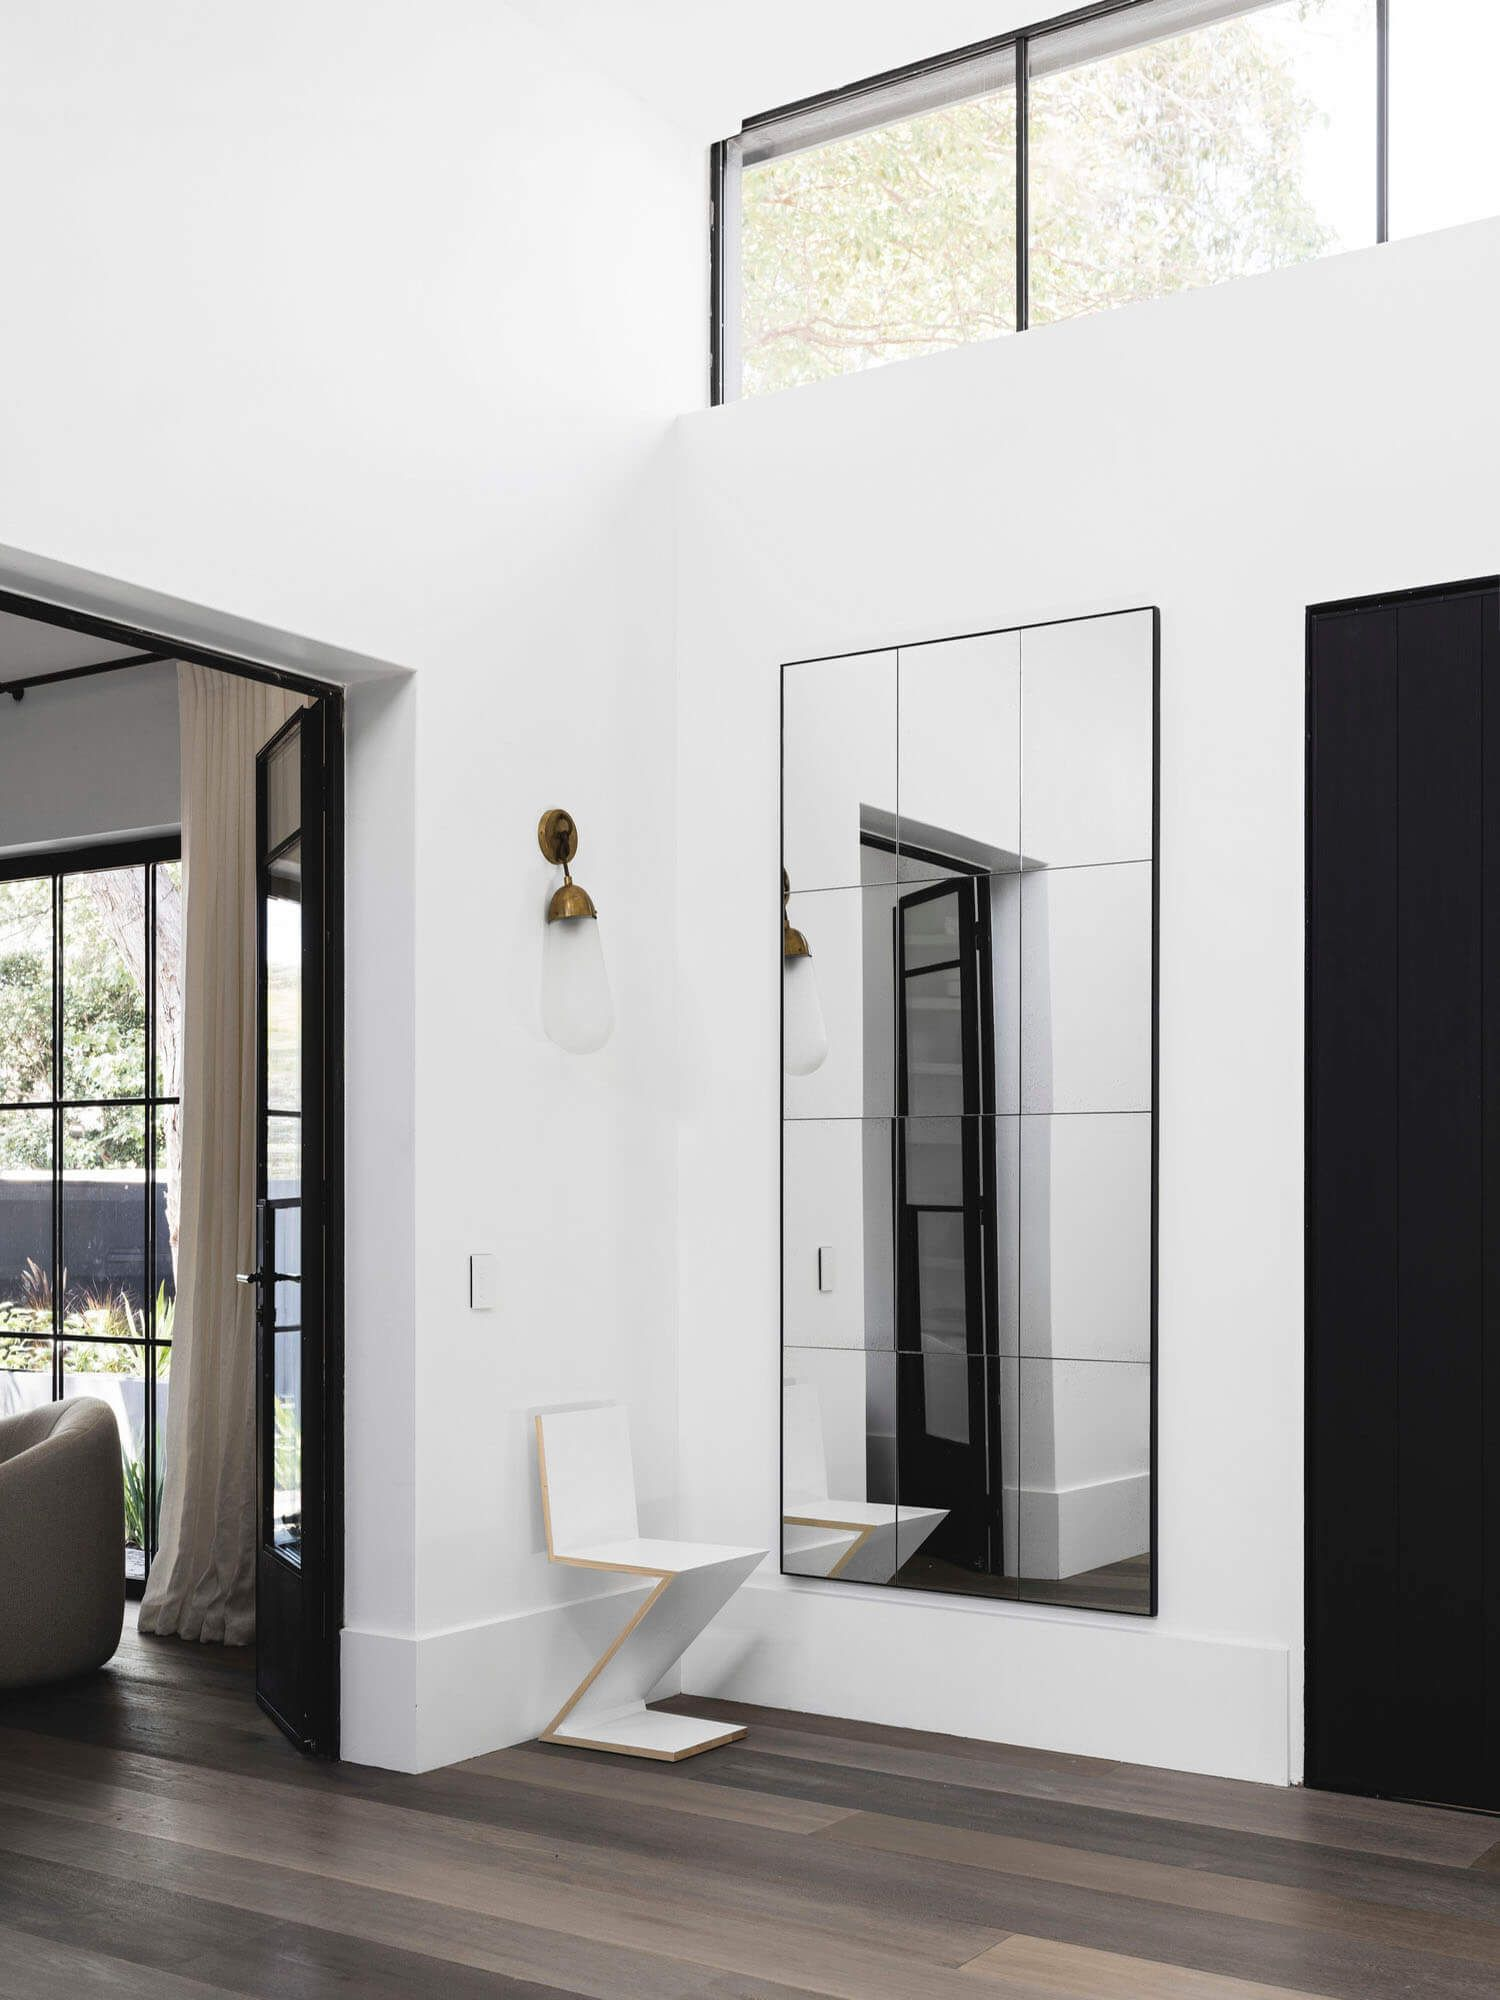 Hunters hill house arcinterior pinterest house interiors and